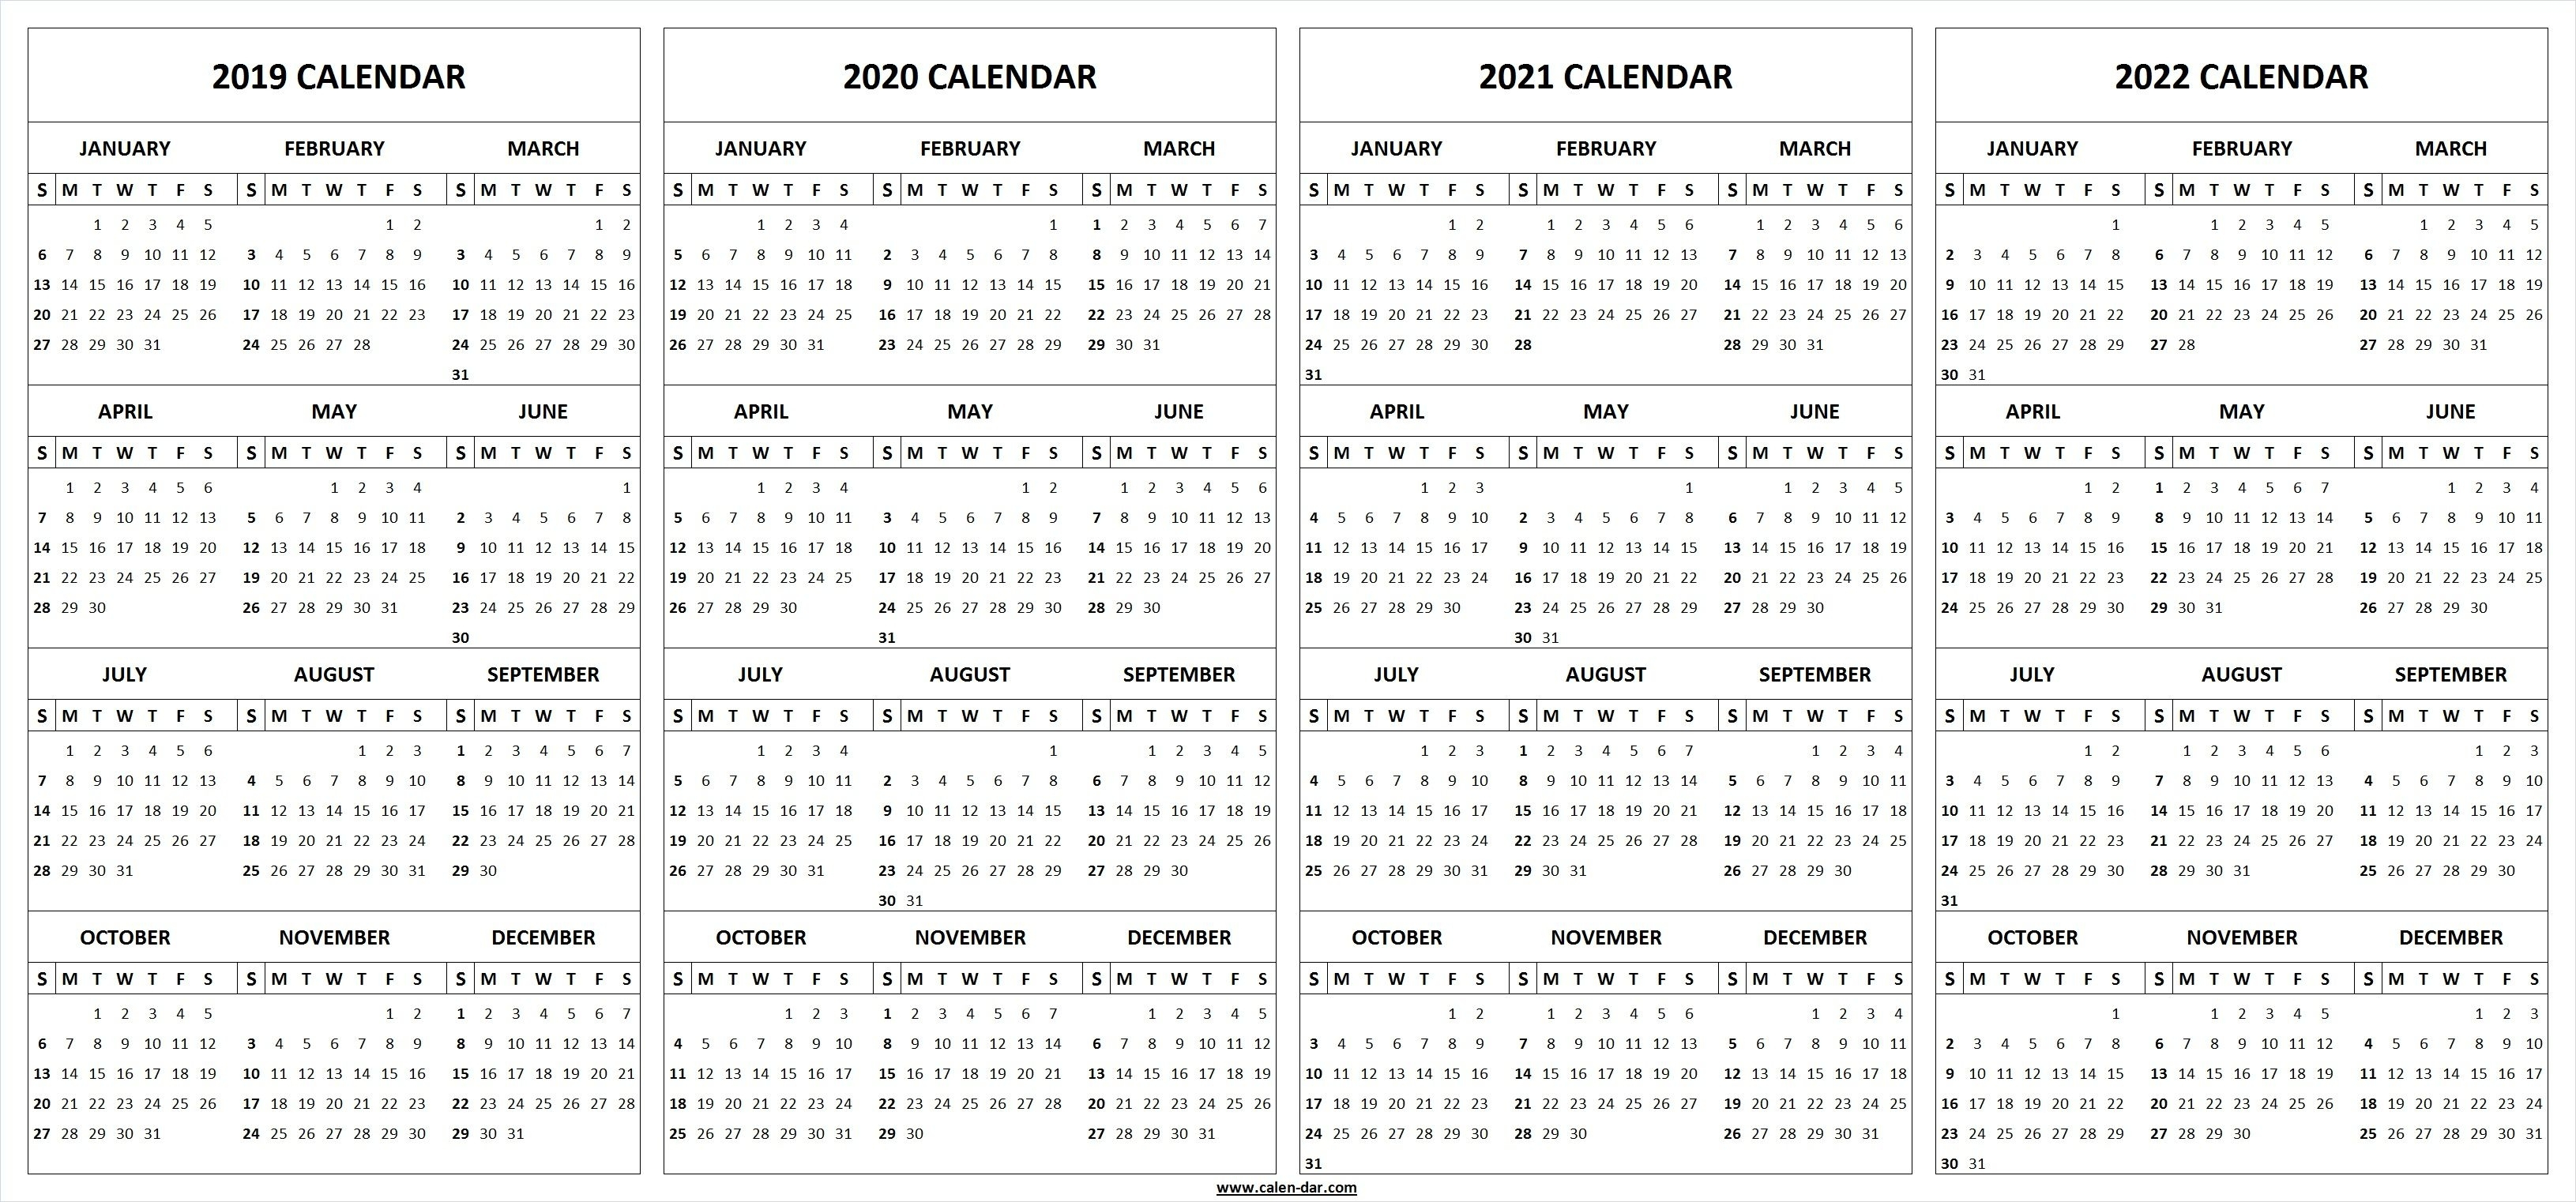 Printable 2019 2020 2021 2022 Calendar Template | Postals De in Small Yearly Calendars For 2021 And 2022